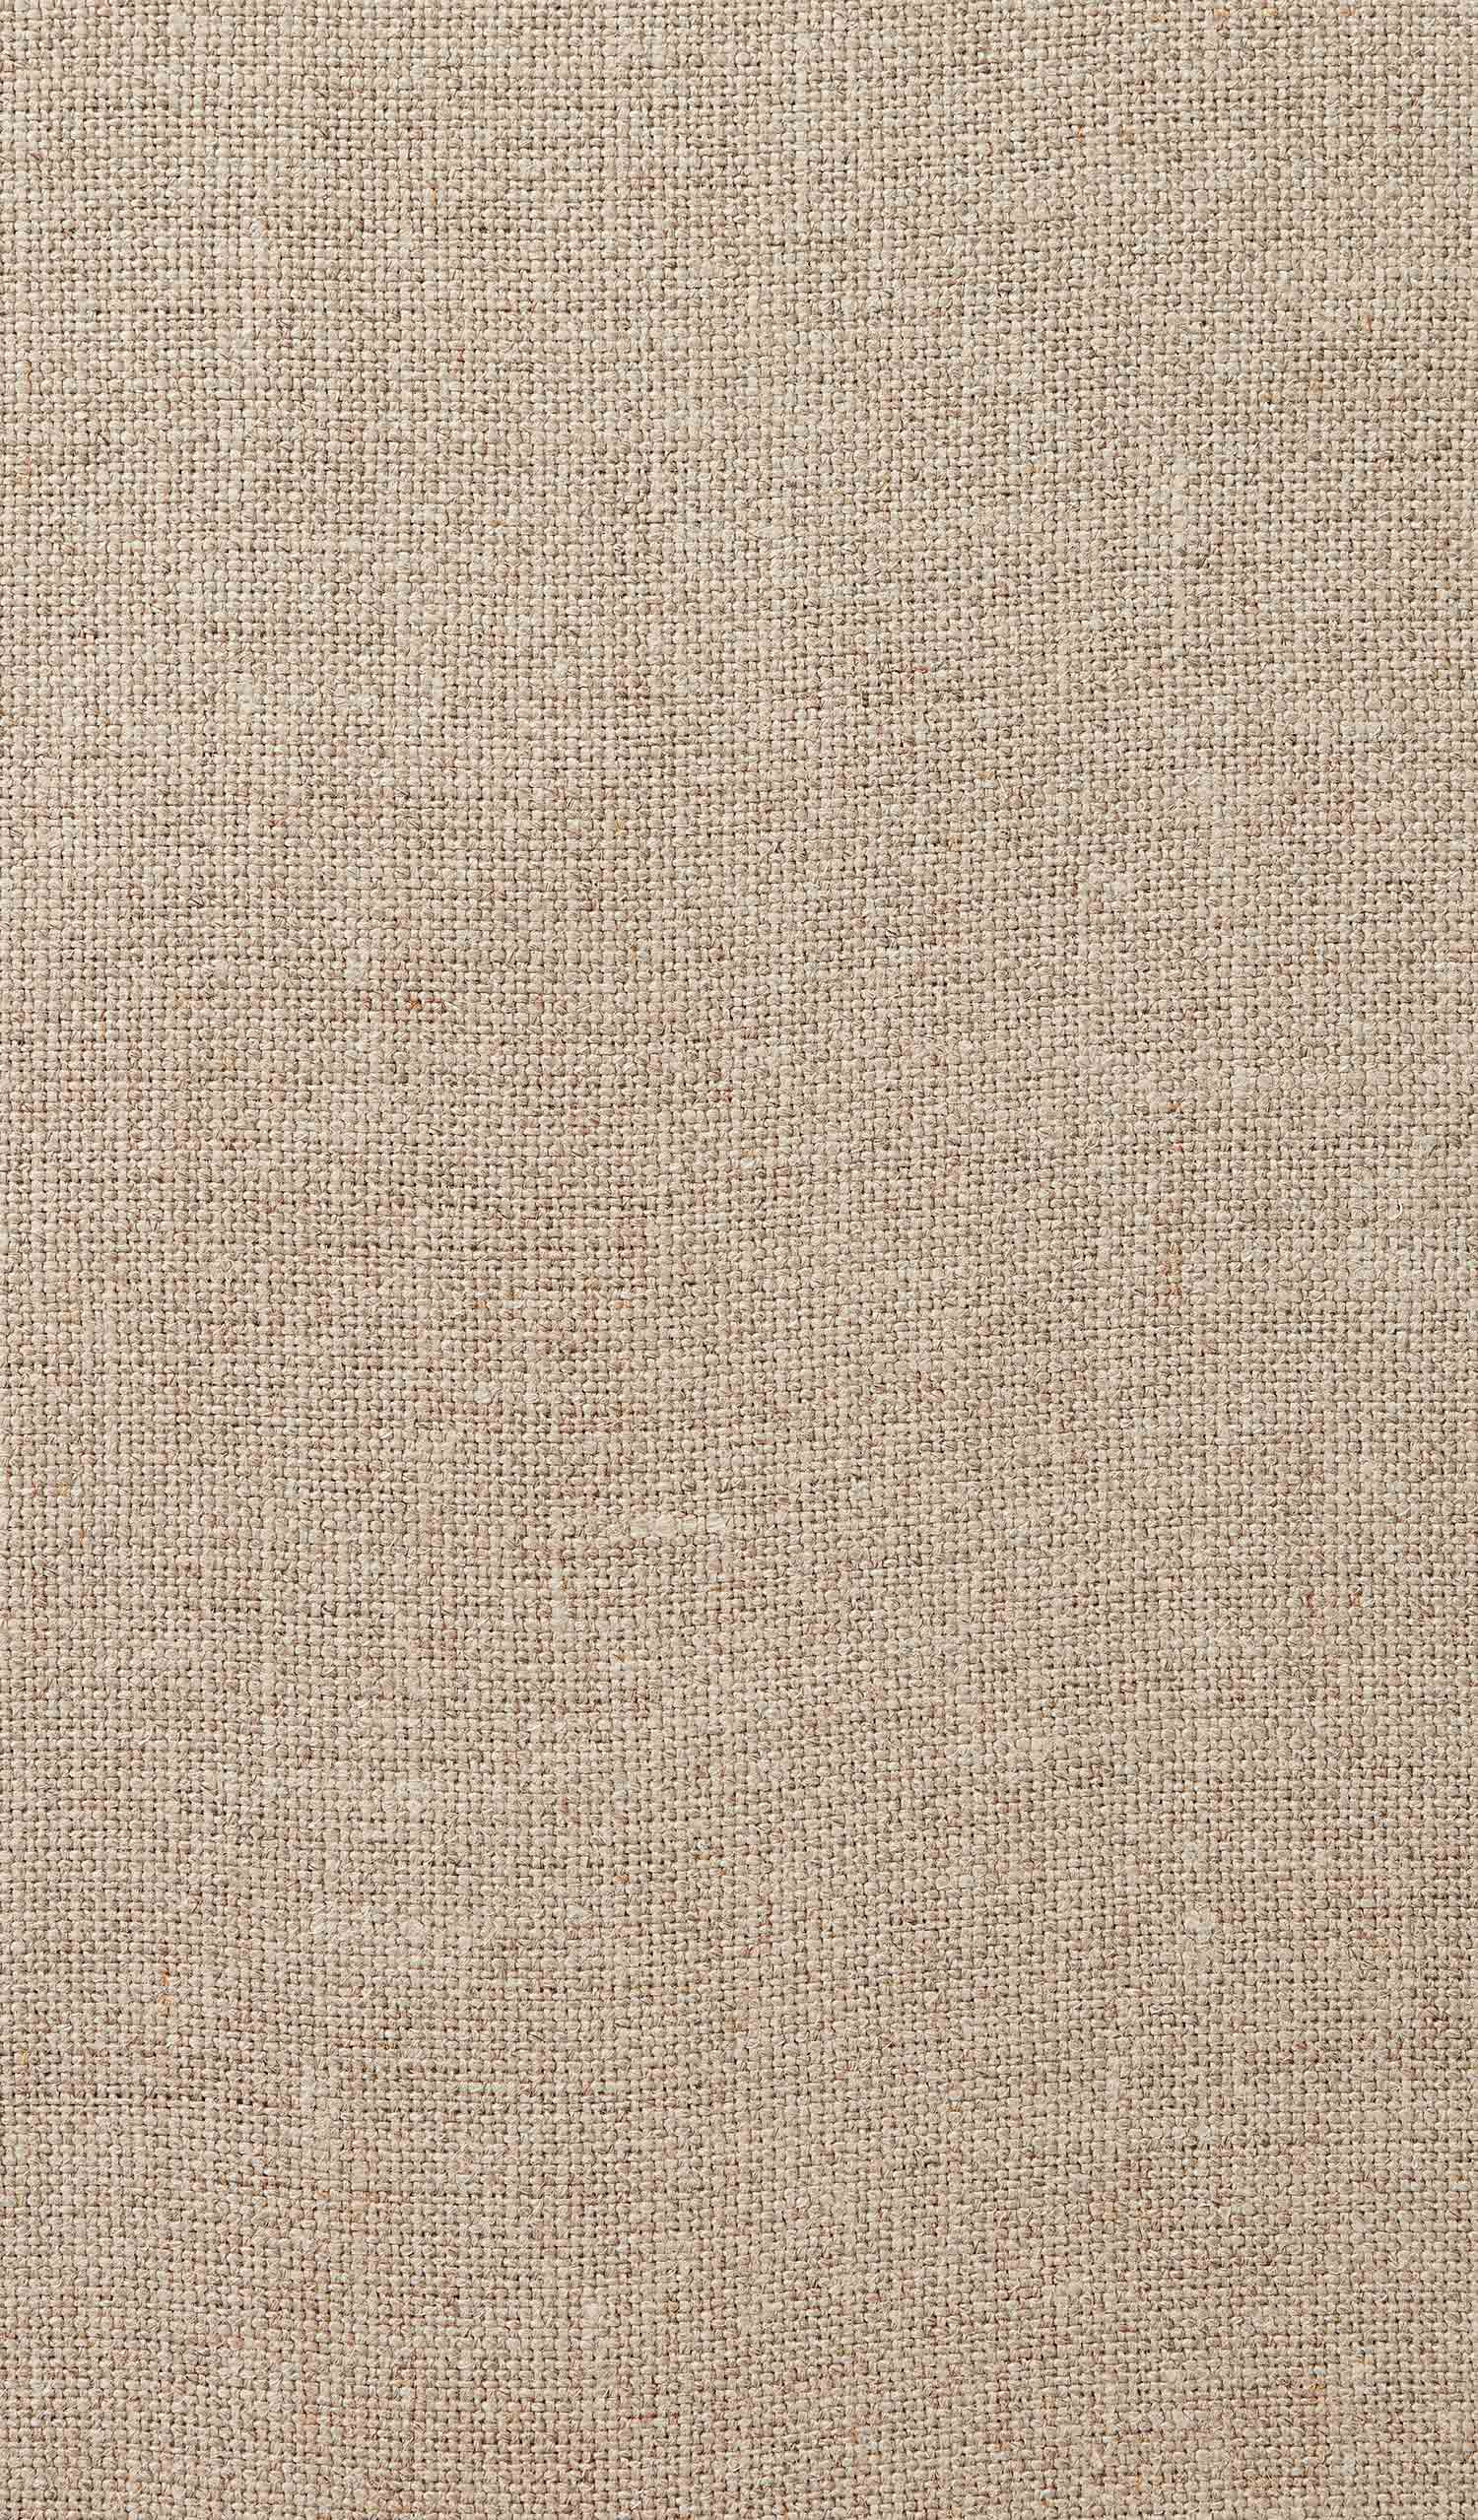 swatch of linen casual flax